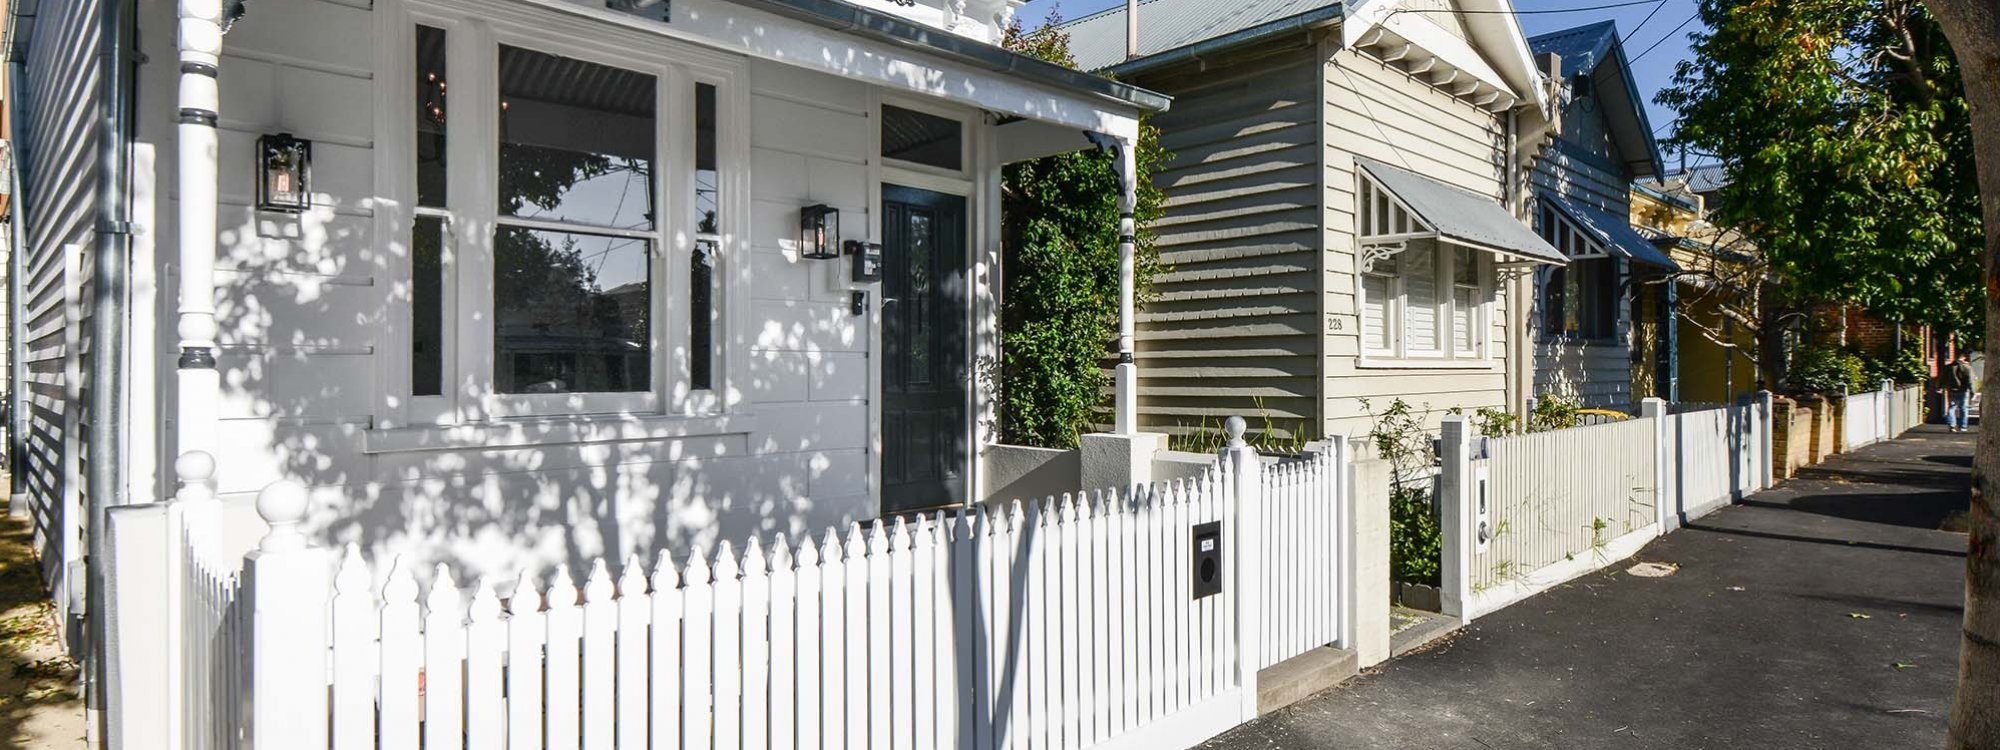 County Down - Port Melbourne - Property Front View